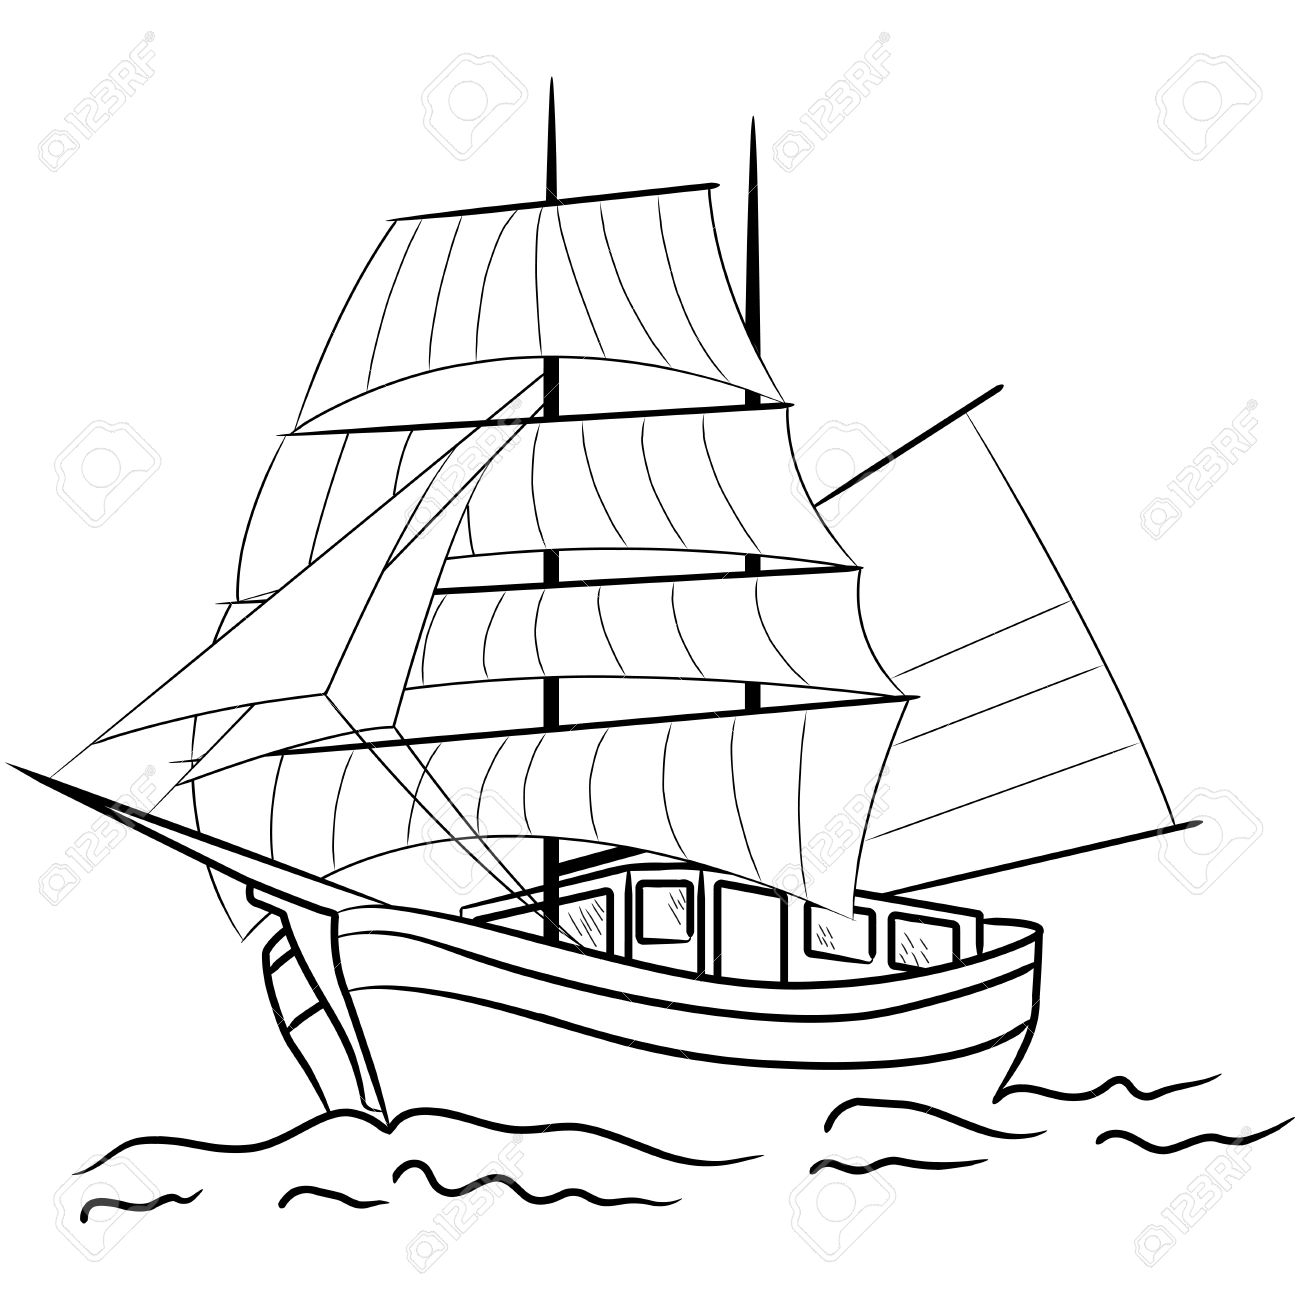 1300x1300 Drawing Of A Ship Vector Drawing Caravel Ship Line Art Stock